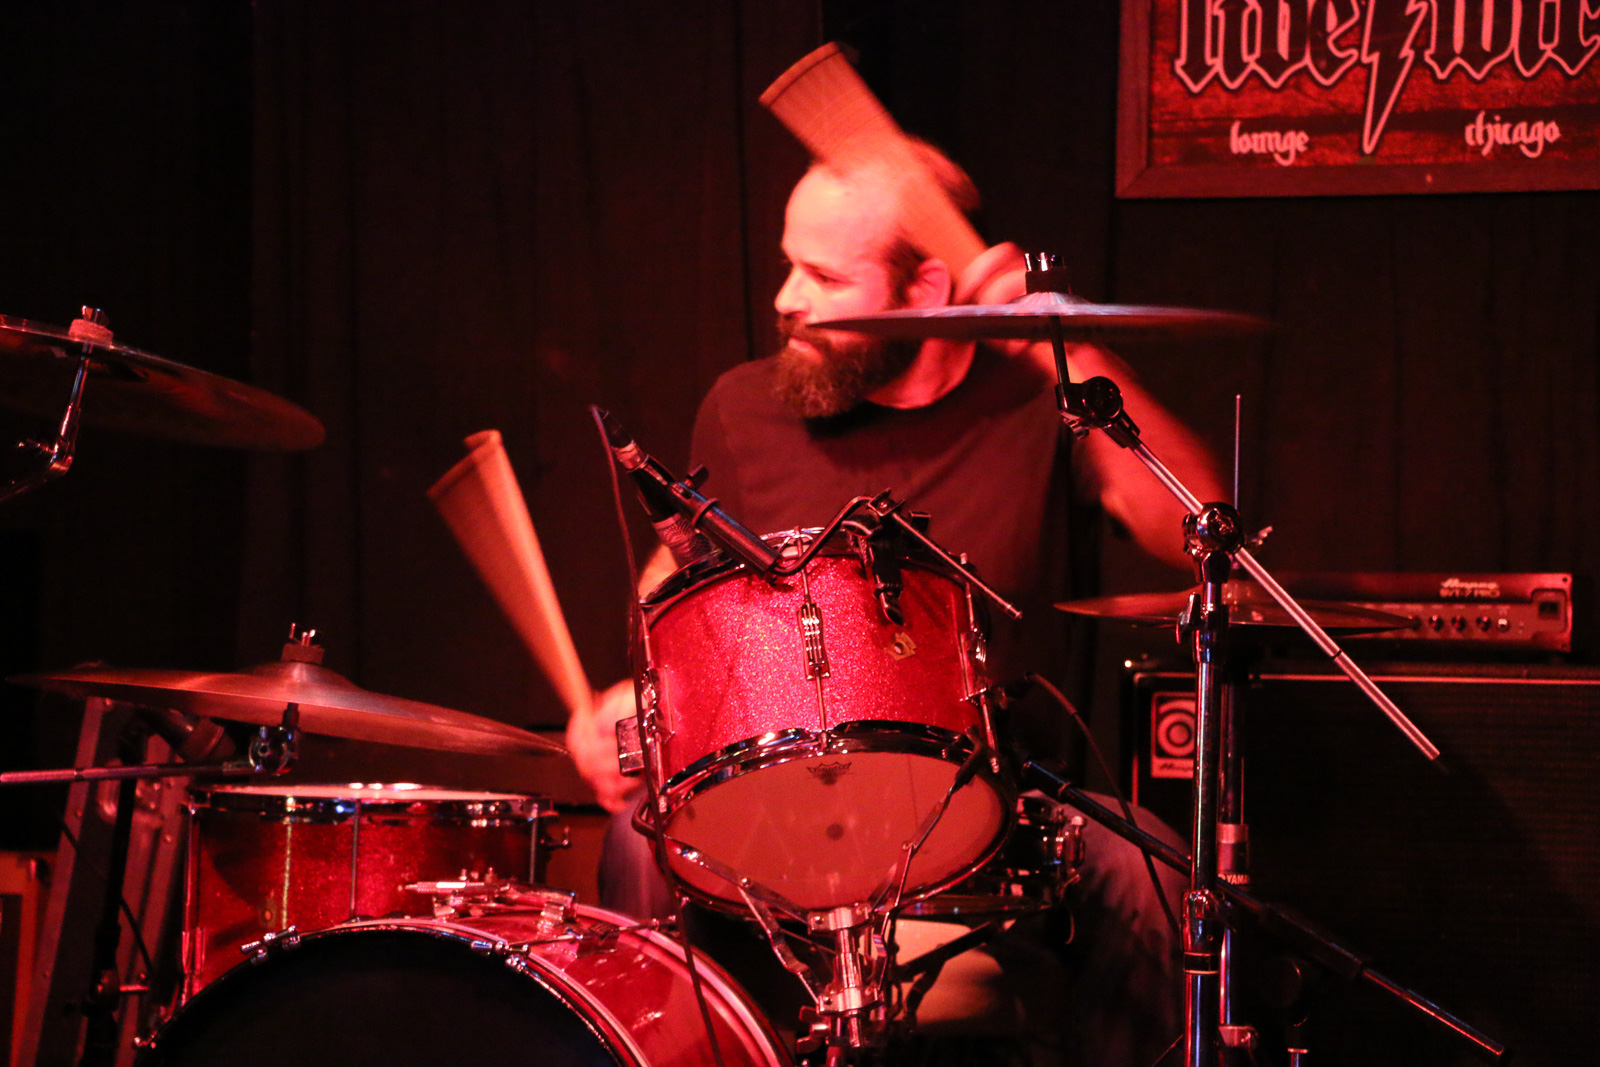 An incredibly good looking bearded man plays drums